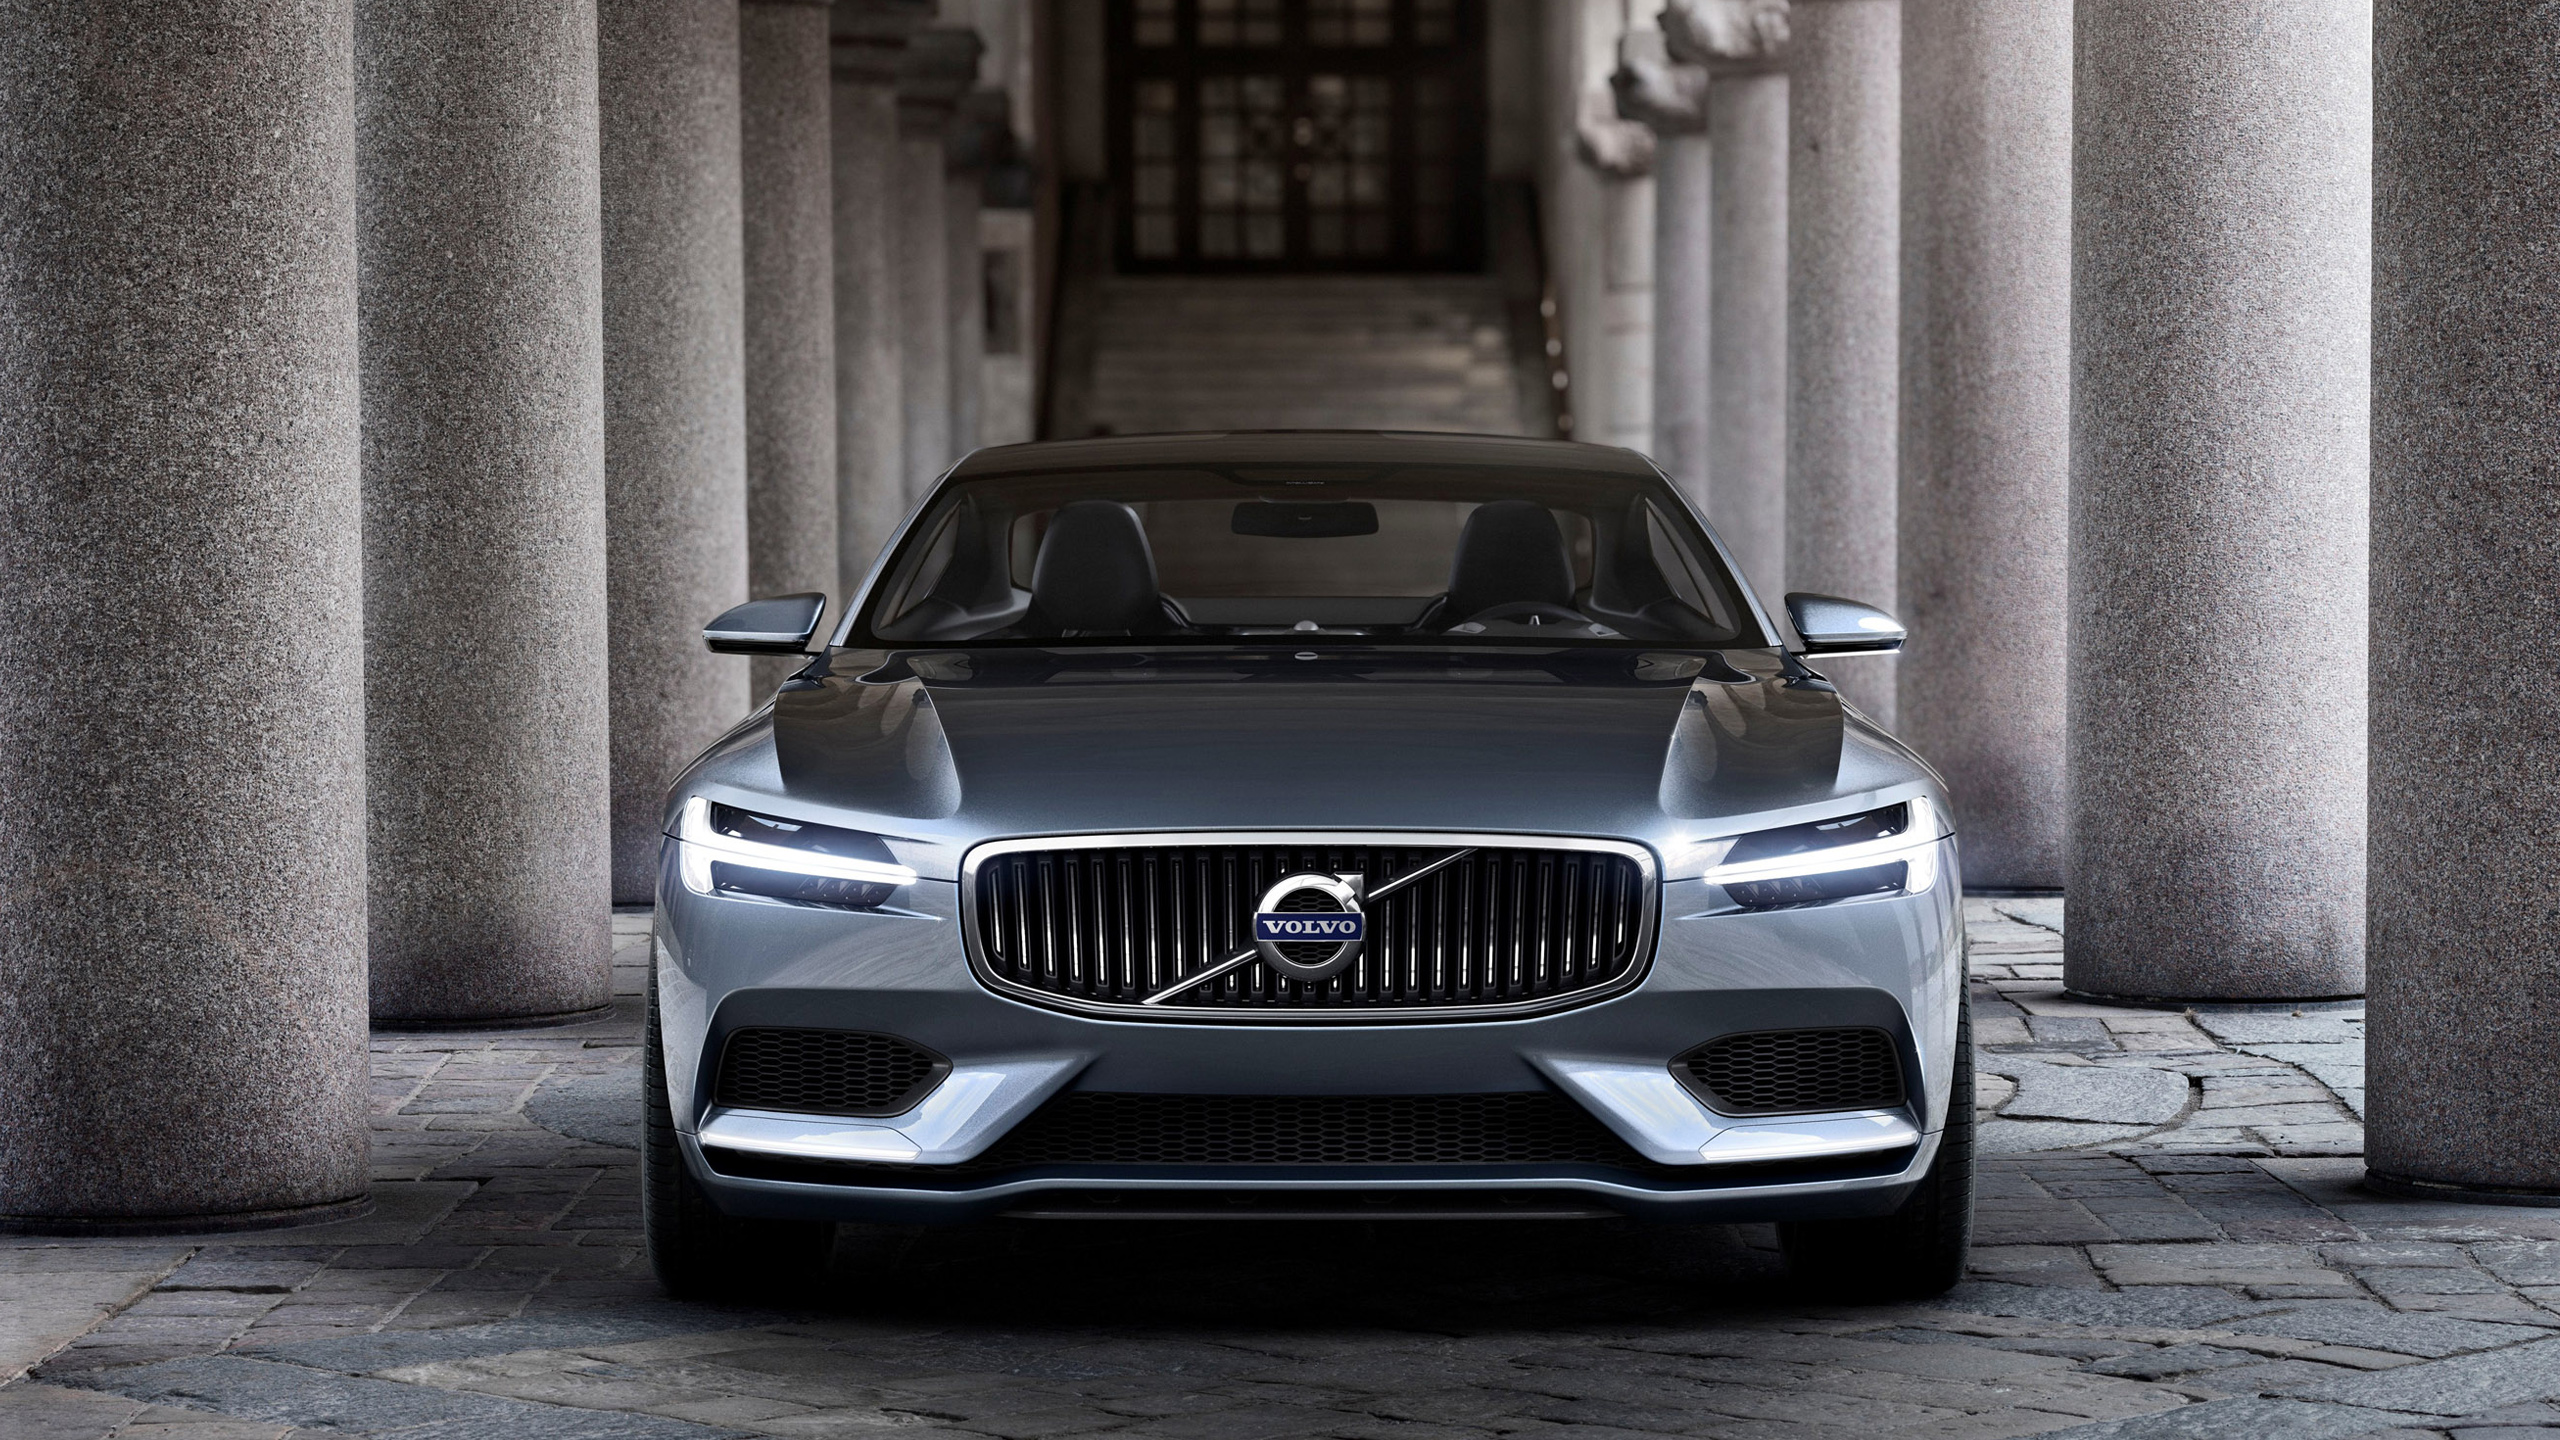 2015 Volvo Concept Coupe Wallpaper HD Car Wallpapers 2560x1440